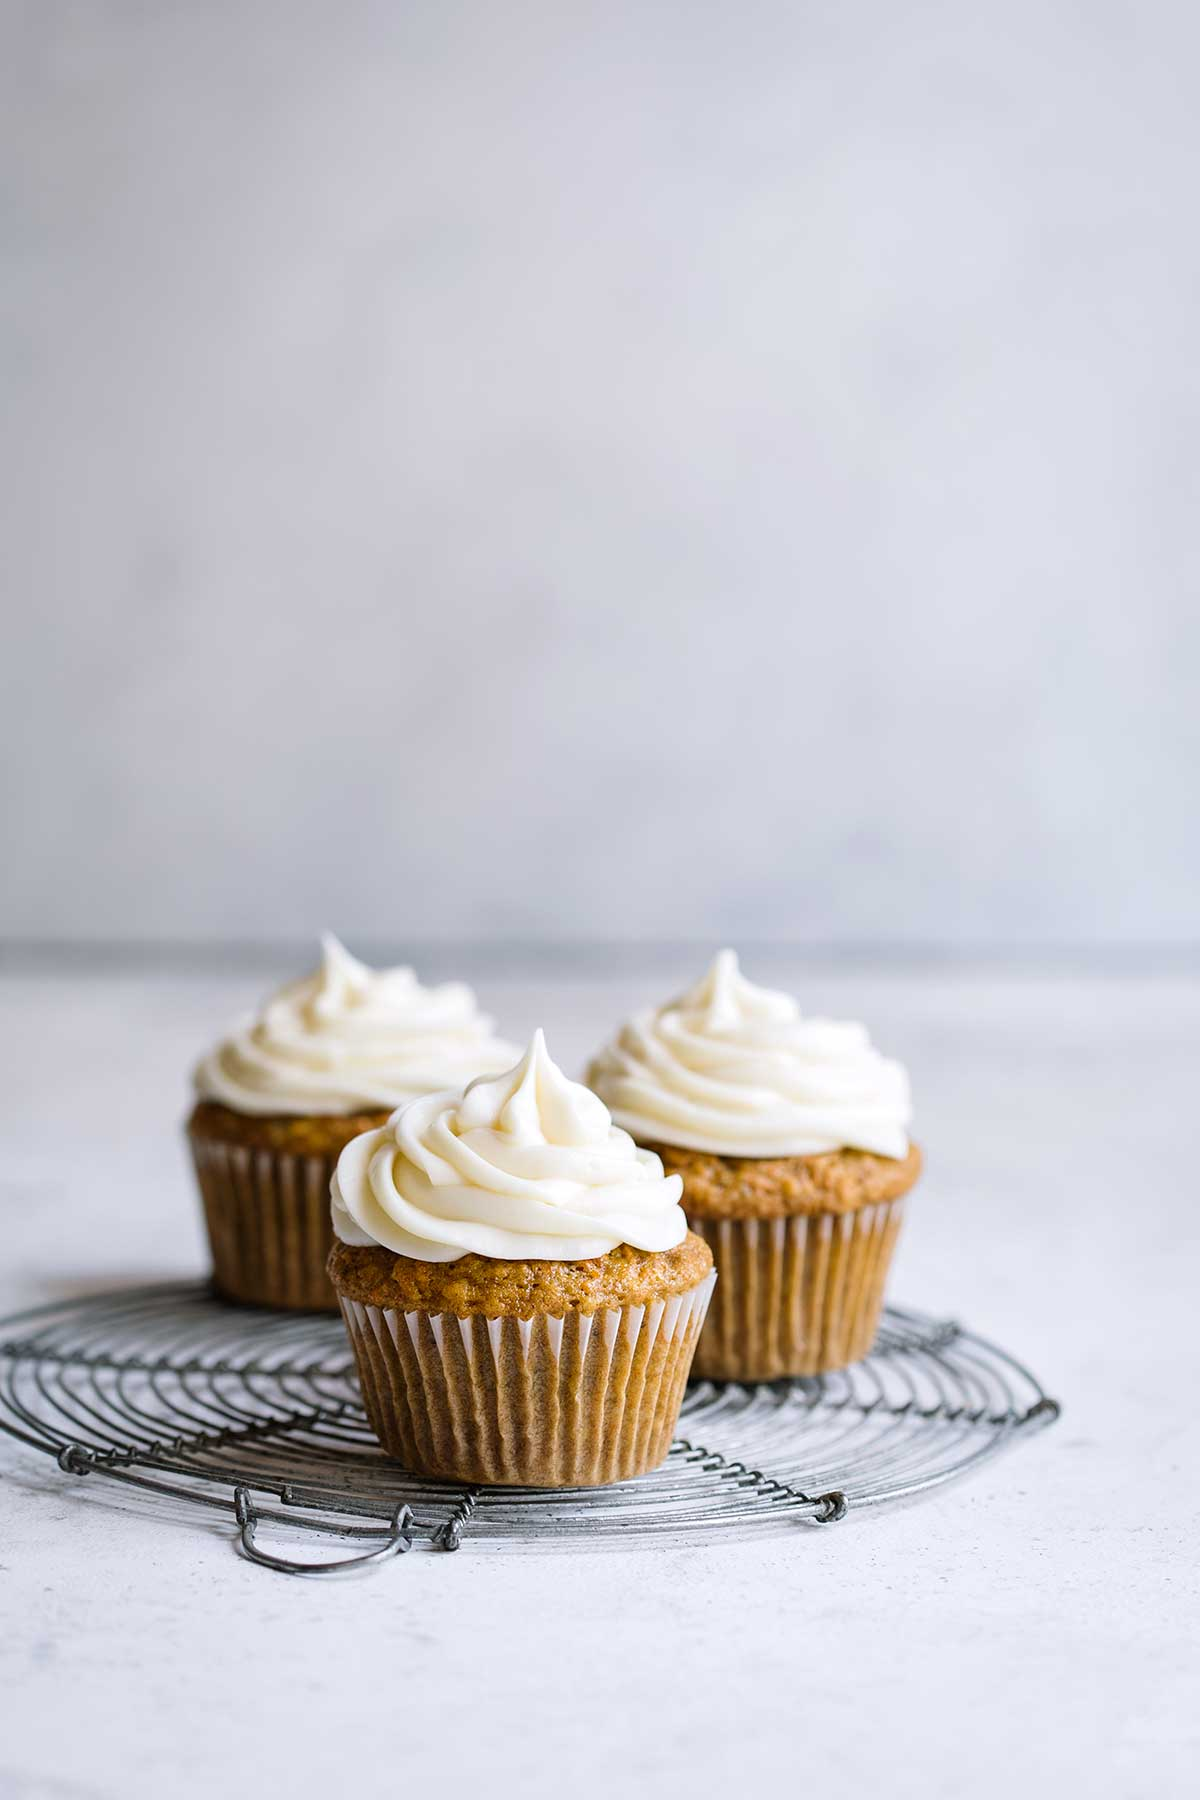 Carrot Cake Cupcakes on a pale backdrop